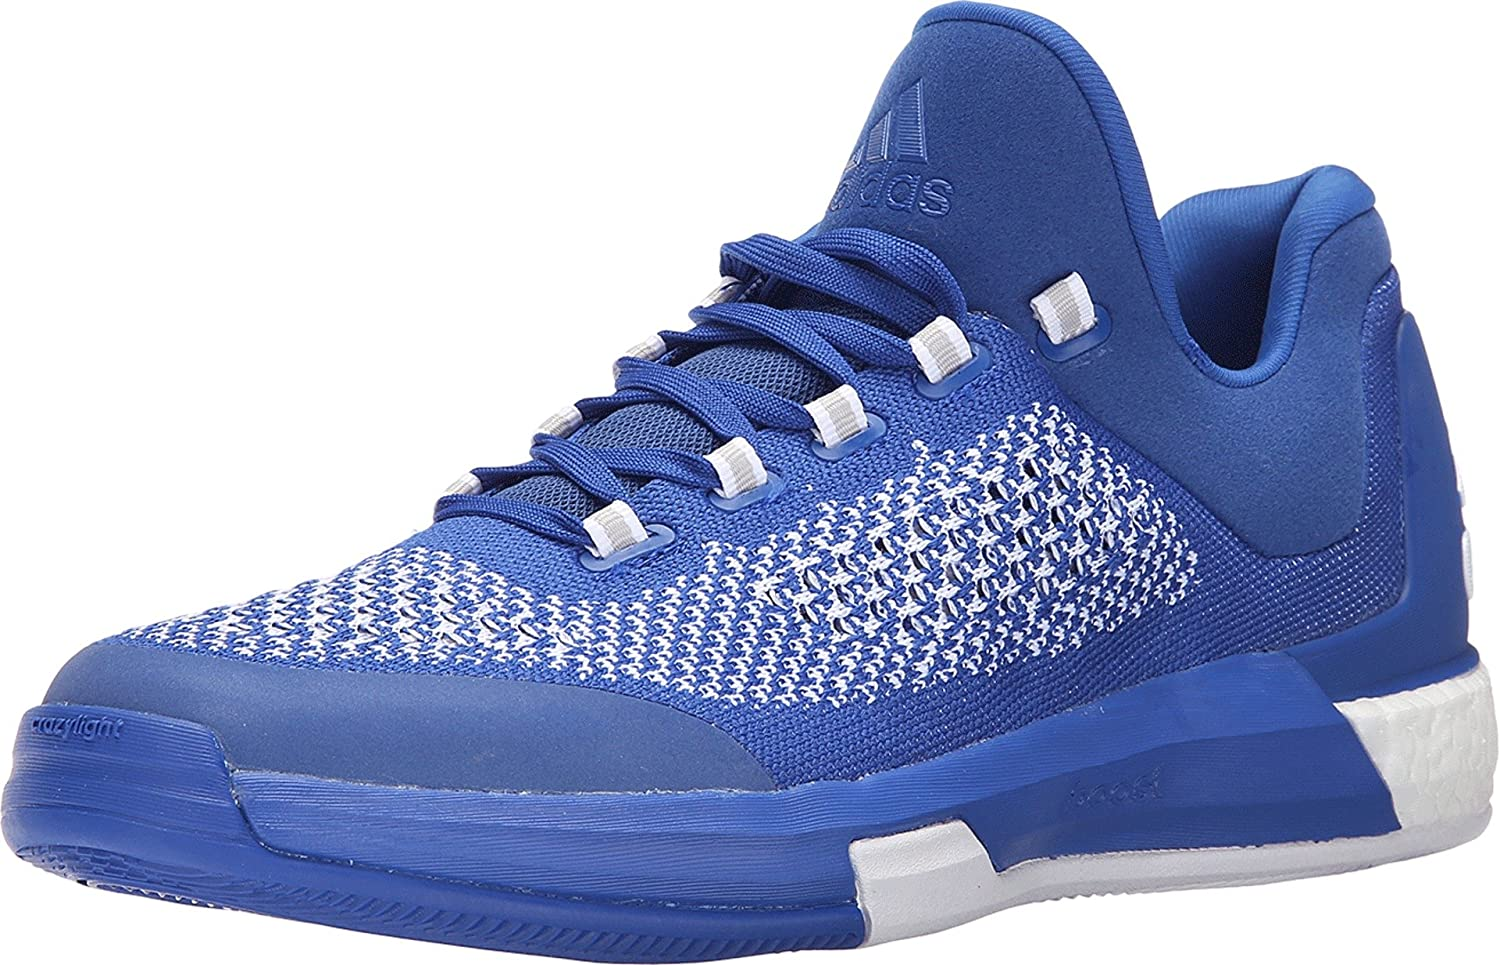 adidas crazylight boost 2015 bleu